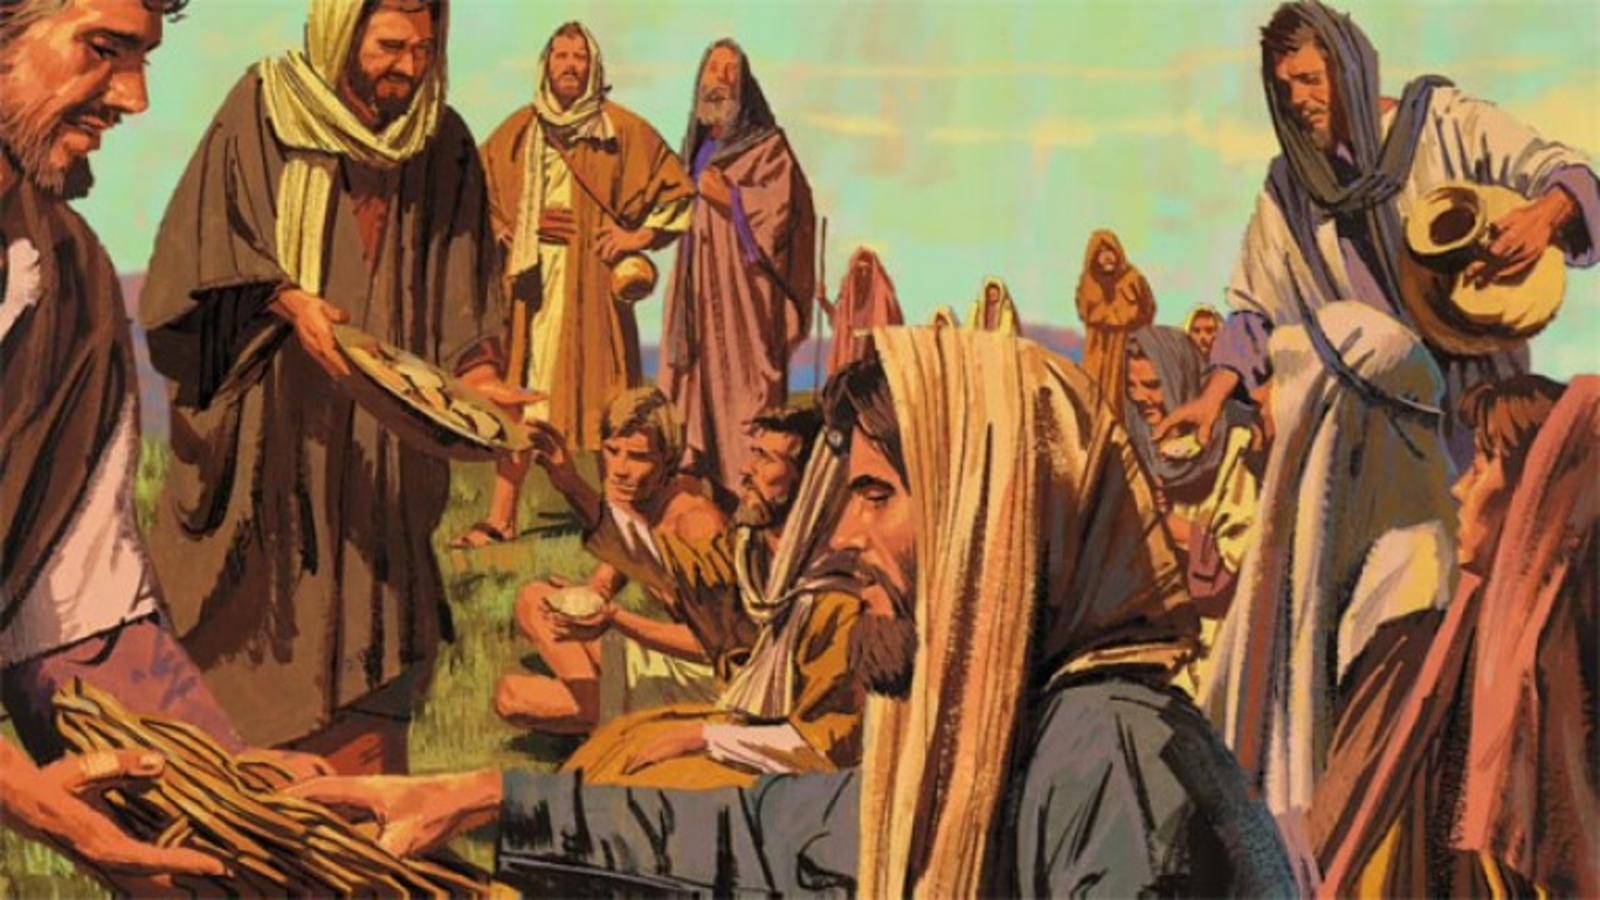 an analysis on the impeccable character of jesus The selfish giant is written following the parable of jesus and the children, where jesus tells to allow the children to go to him, for theirs is the kingdom of god.